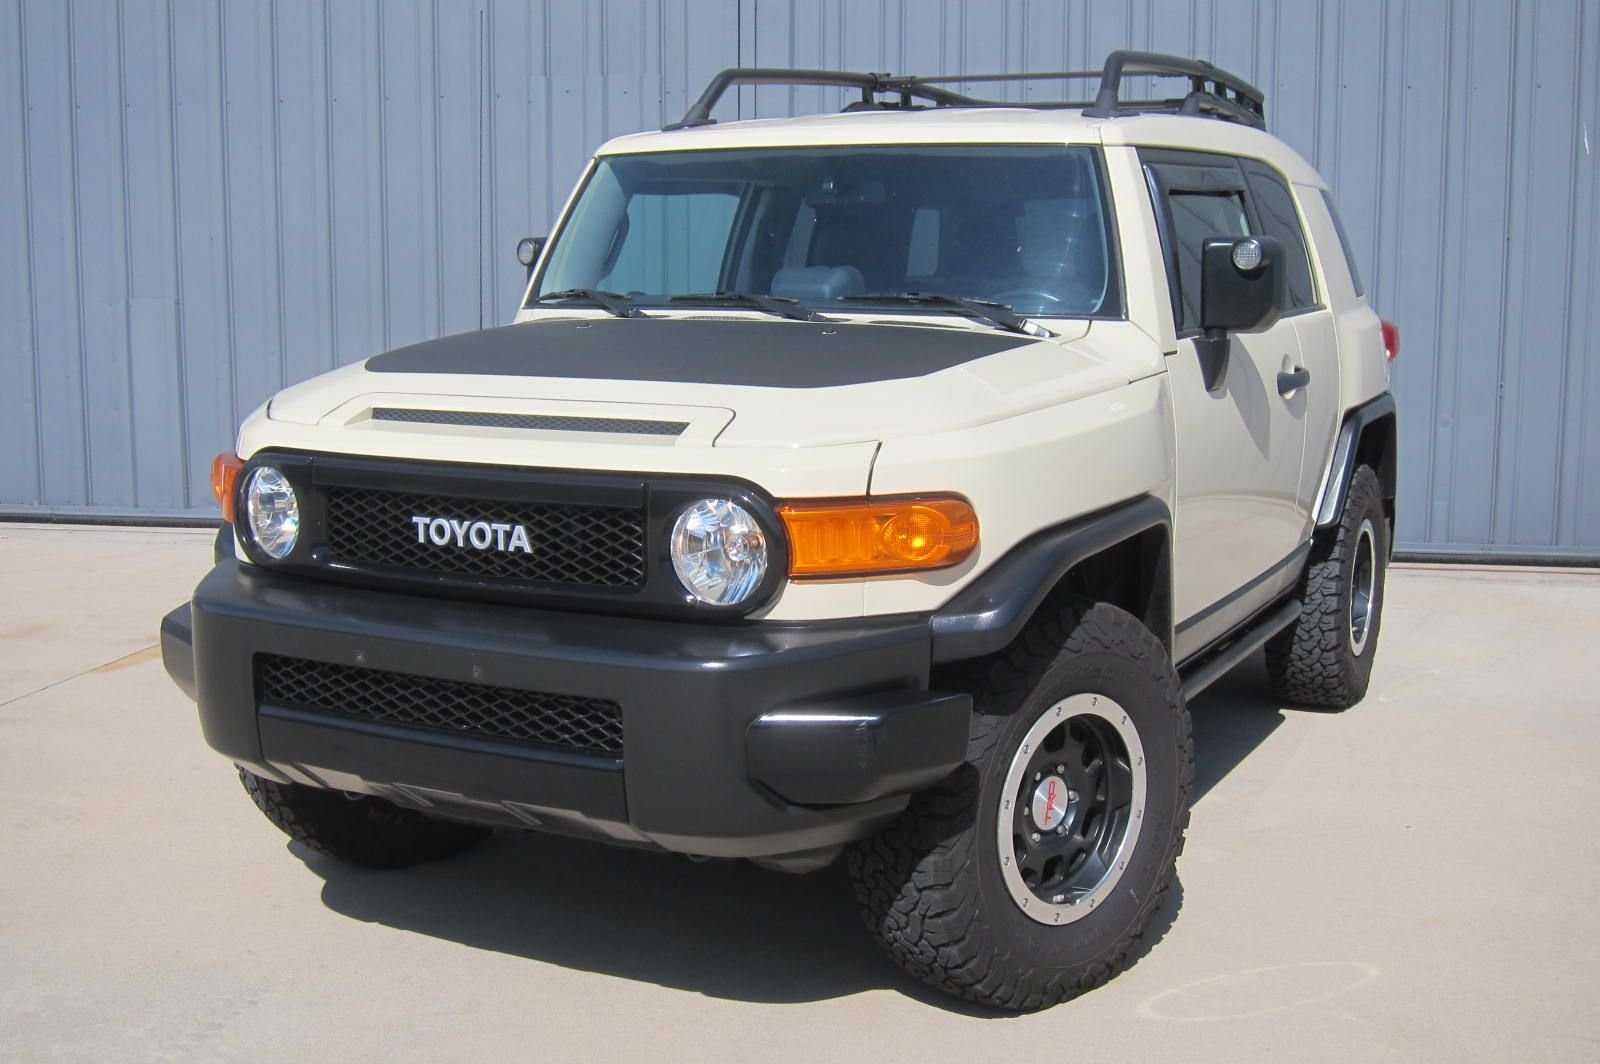 2010 Toyota FJ CRUISER TRAIL TEAM EDITION